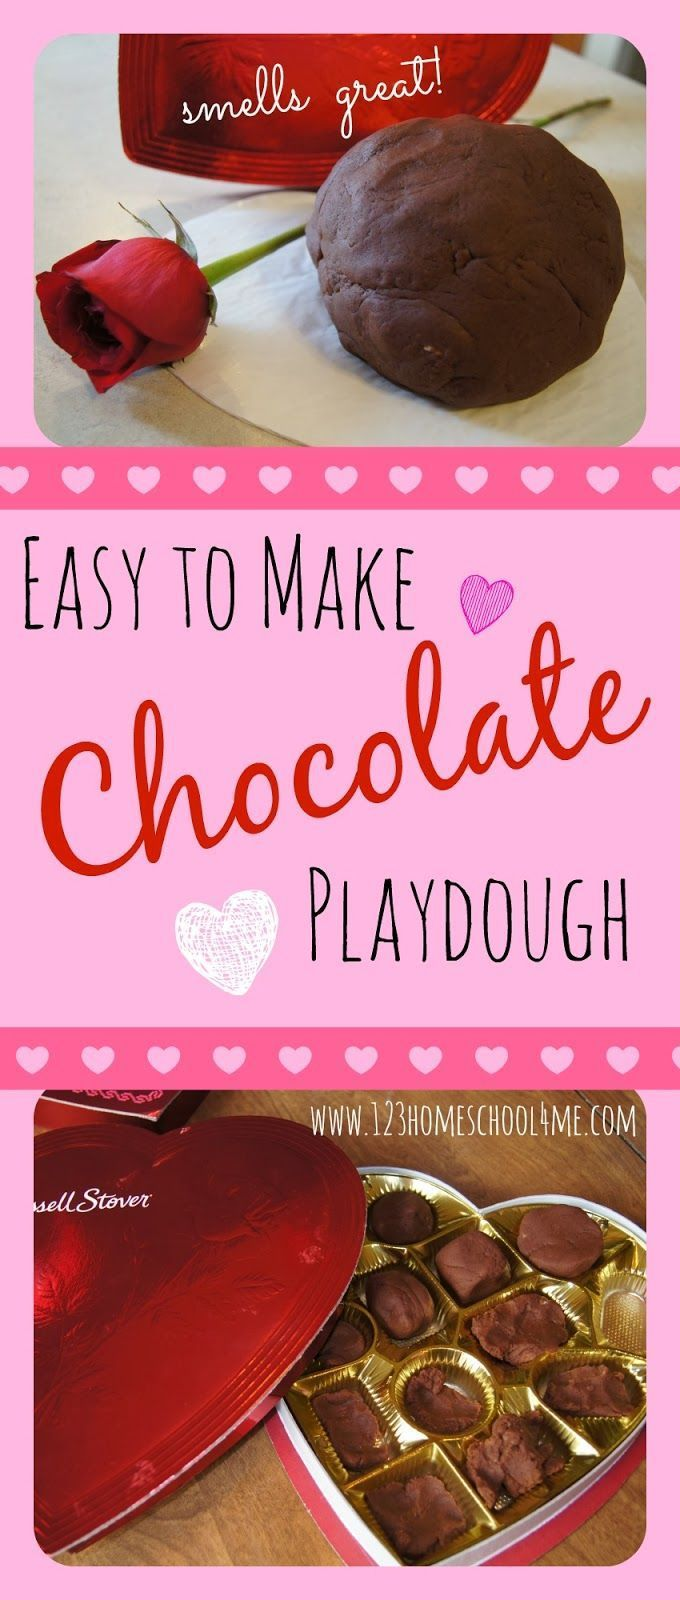 Chocolate Playdough Recipe - This easy to make play dough recipe is fun to play with, smells amazing, and lasts a couple years! Perfect for Valentines Day Activity for toddler, preschool, or kindergarten in February (sensory play, valentines day activity, playdough recipes, play, kids activities)